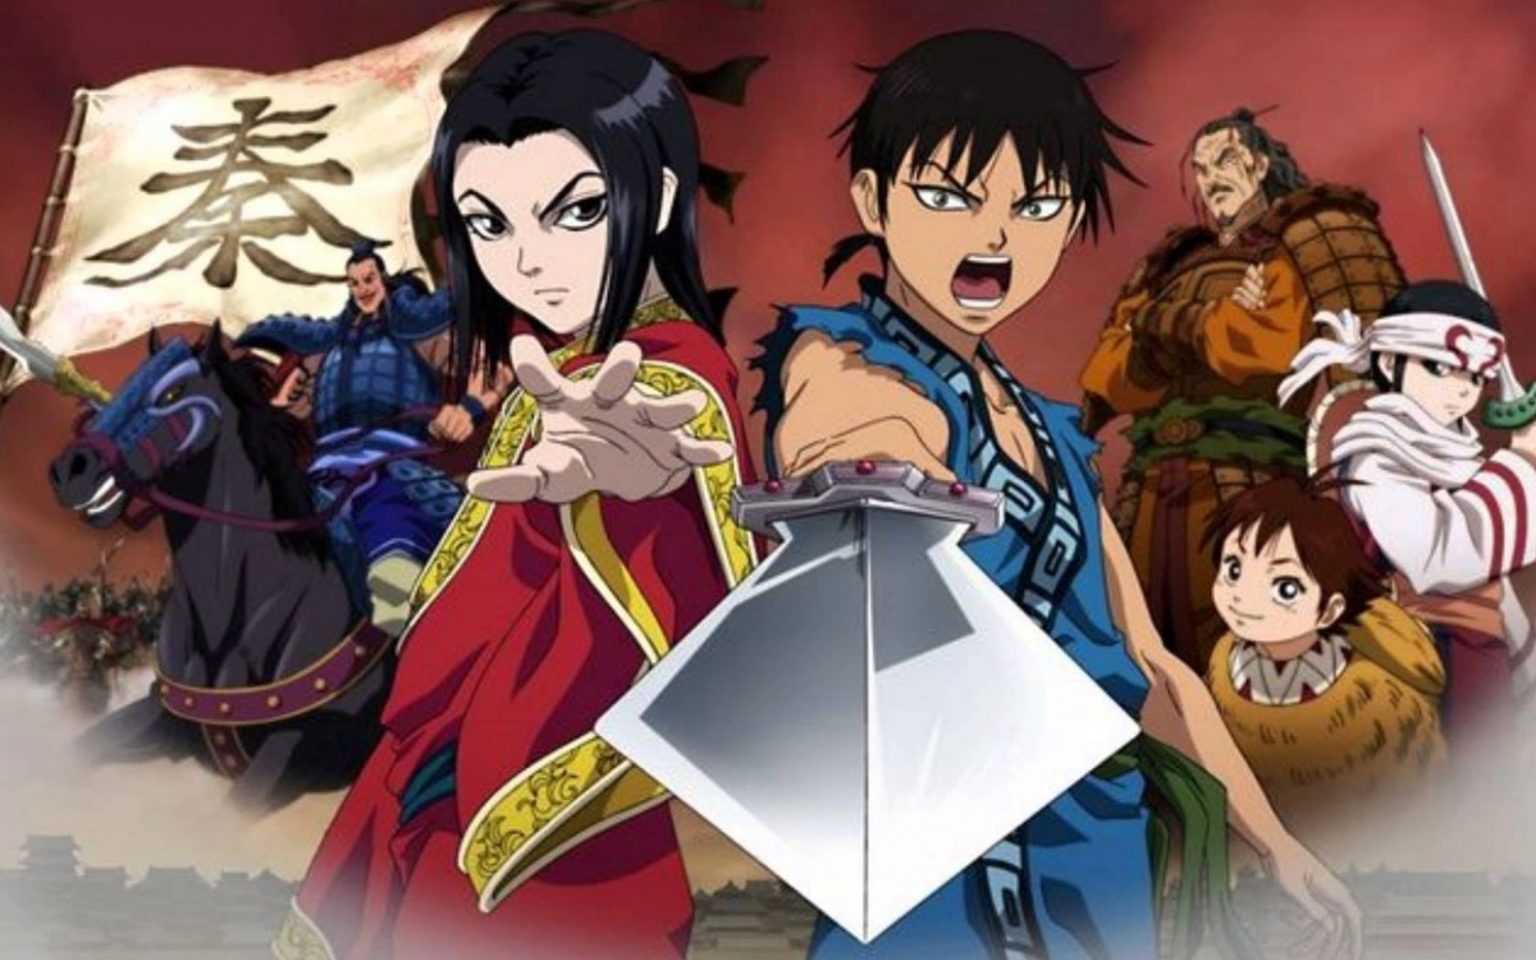 Kingdom 3 Episode 21 Anime Release Date, Recap, And Spoilers